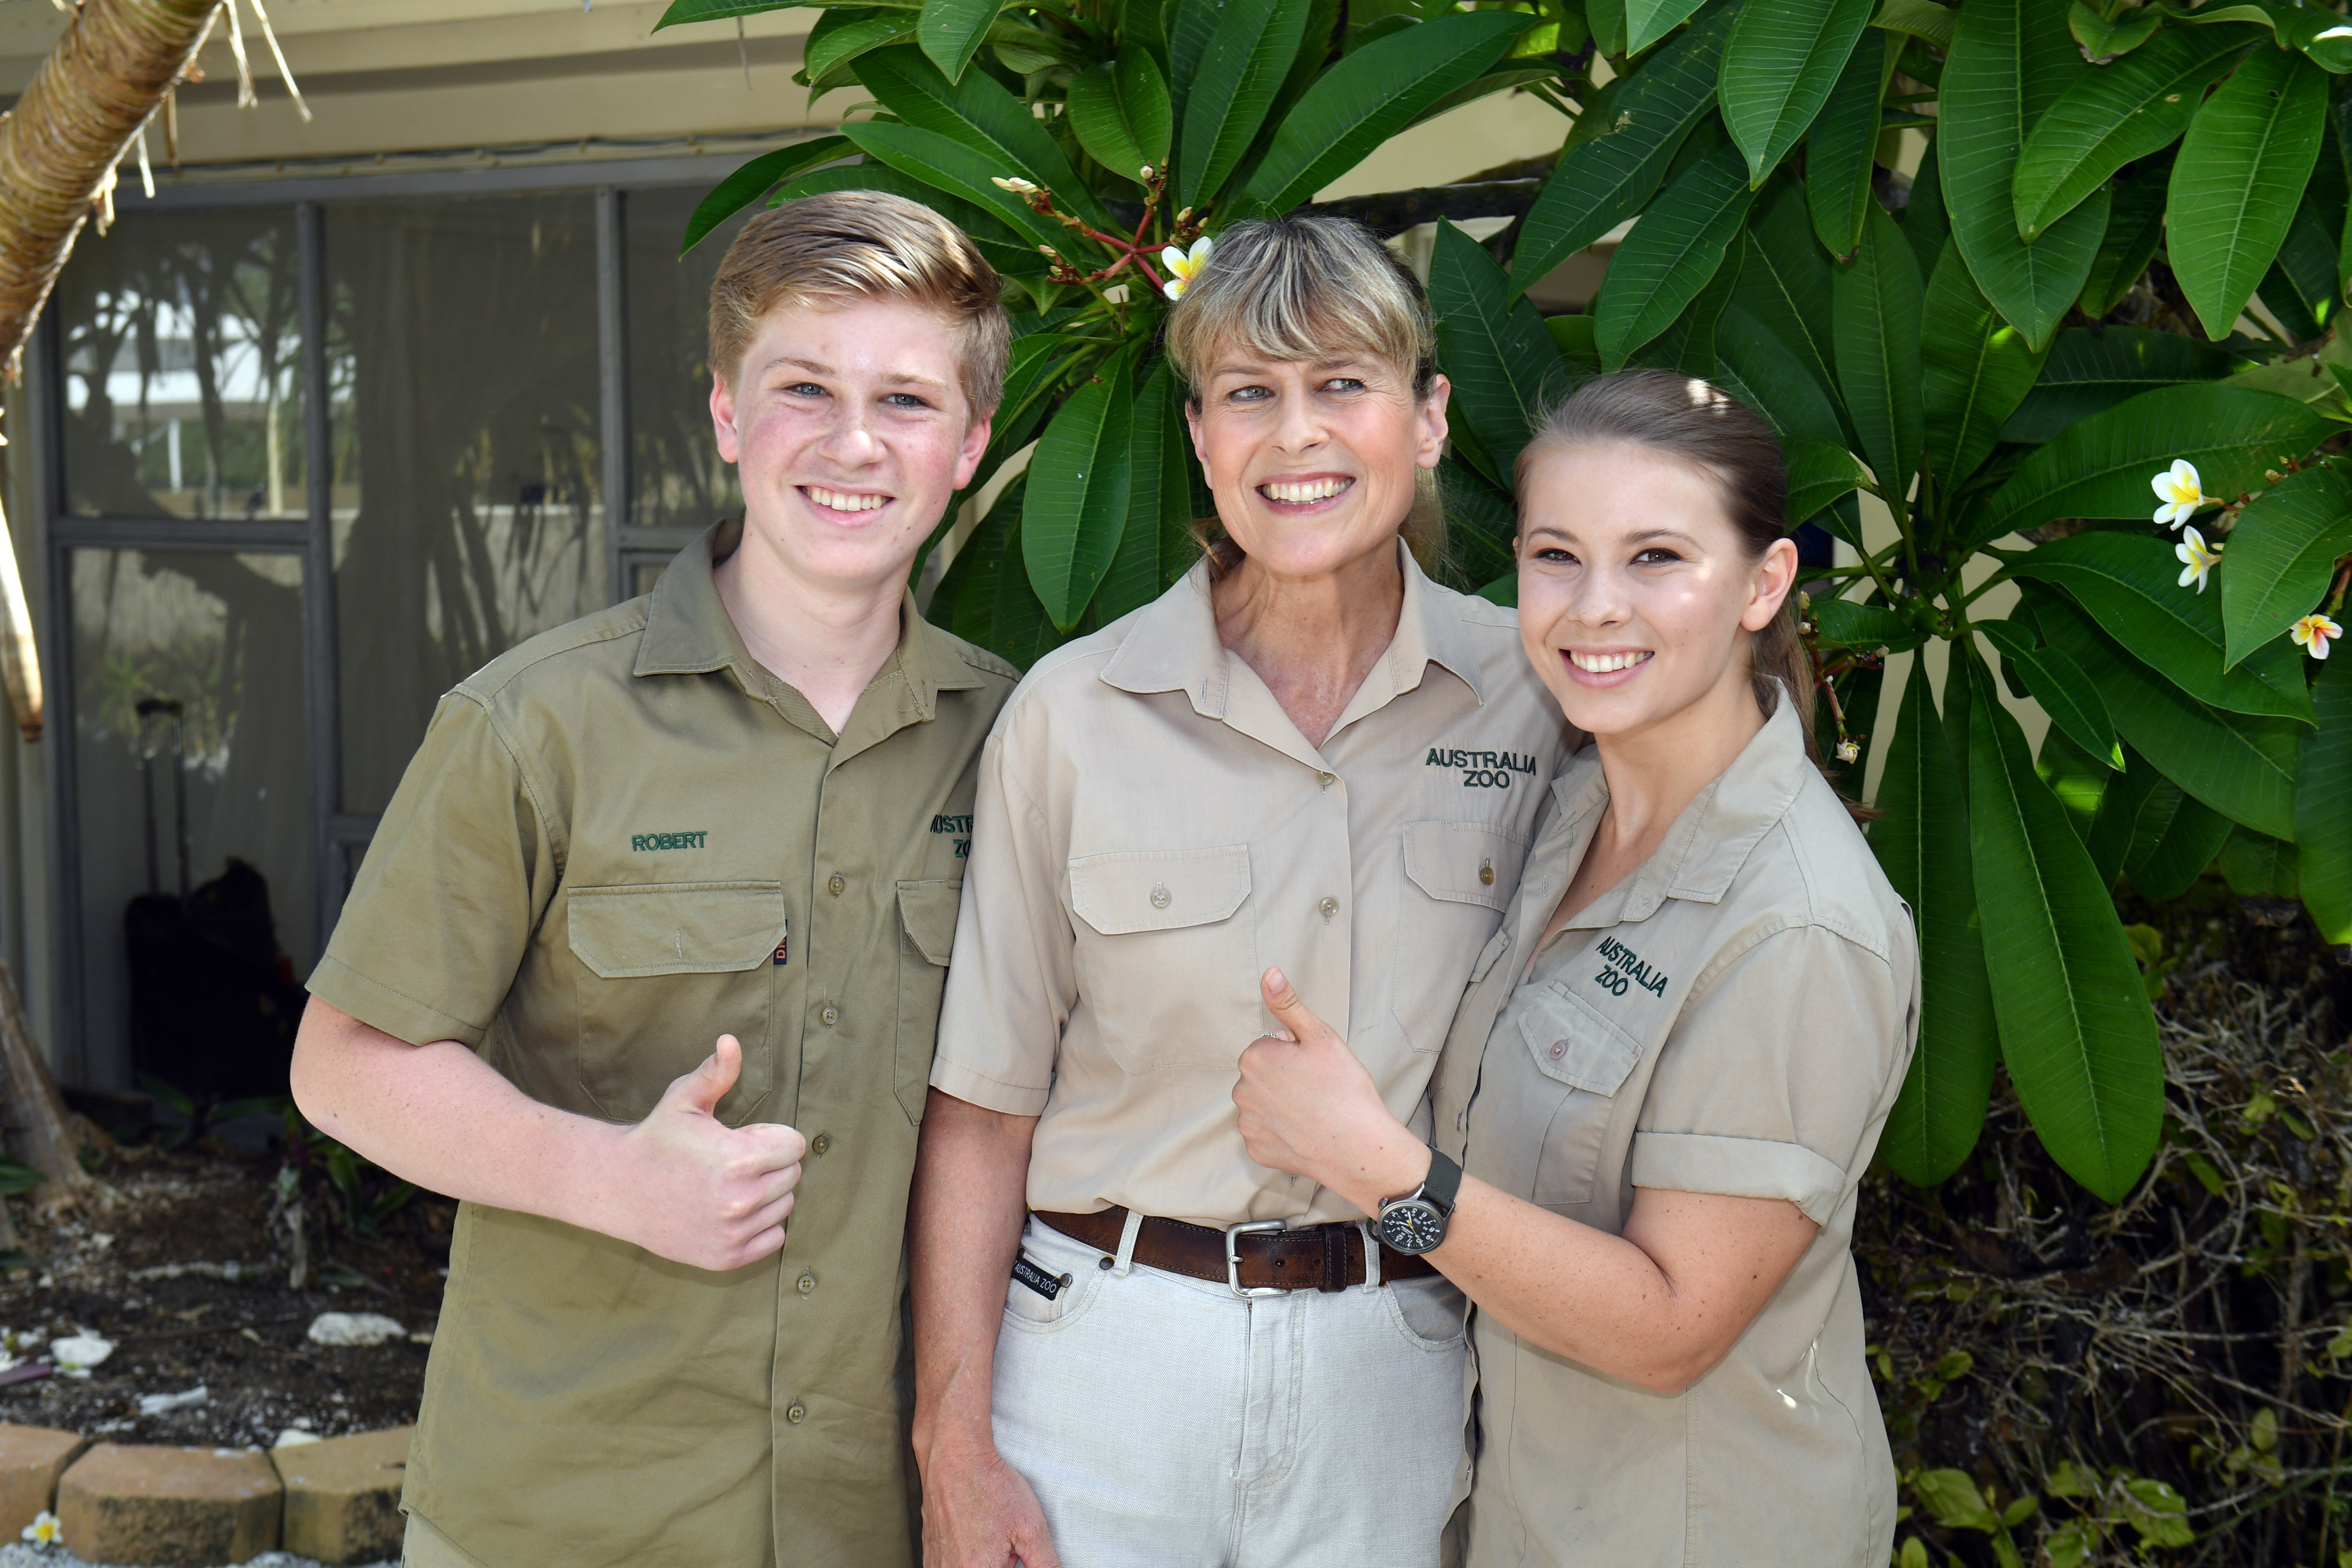 Bob Irwin, Terri Irwin and Bindi Irwin pose for a photo before a roundtable meeting, discussing coral resilience on Lady Elliot Island on April 6, 2018|Photo: Getty Images